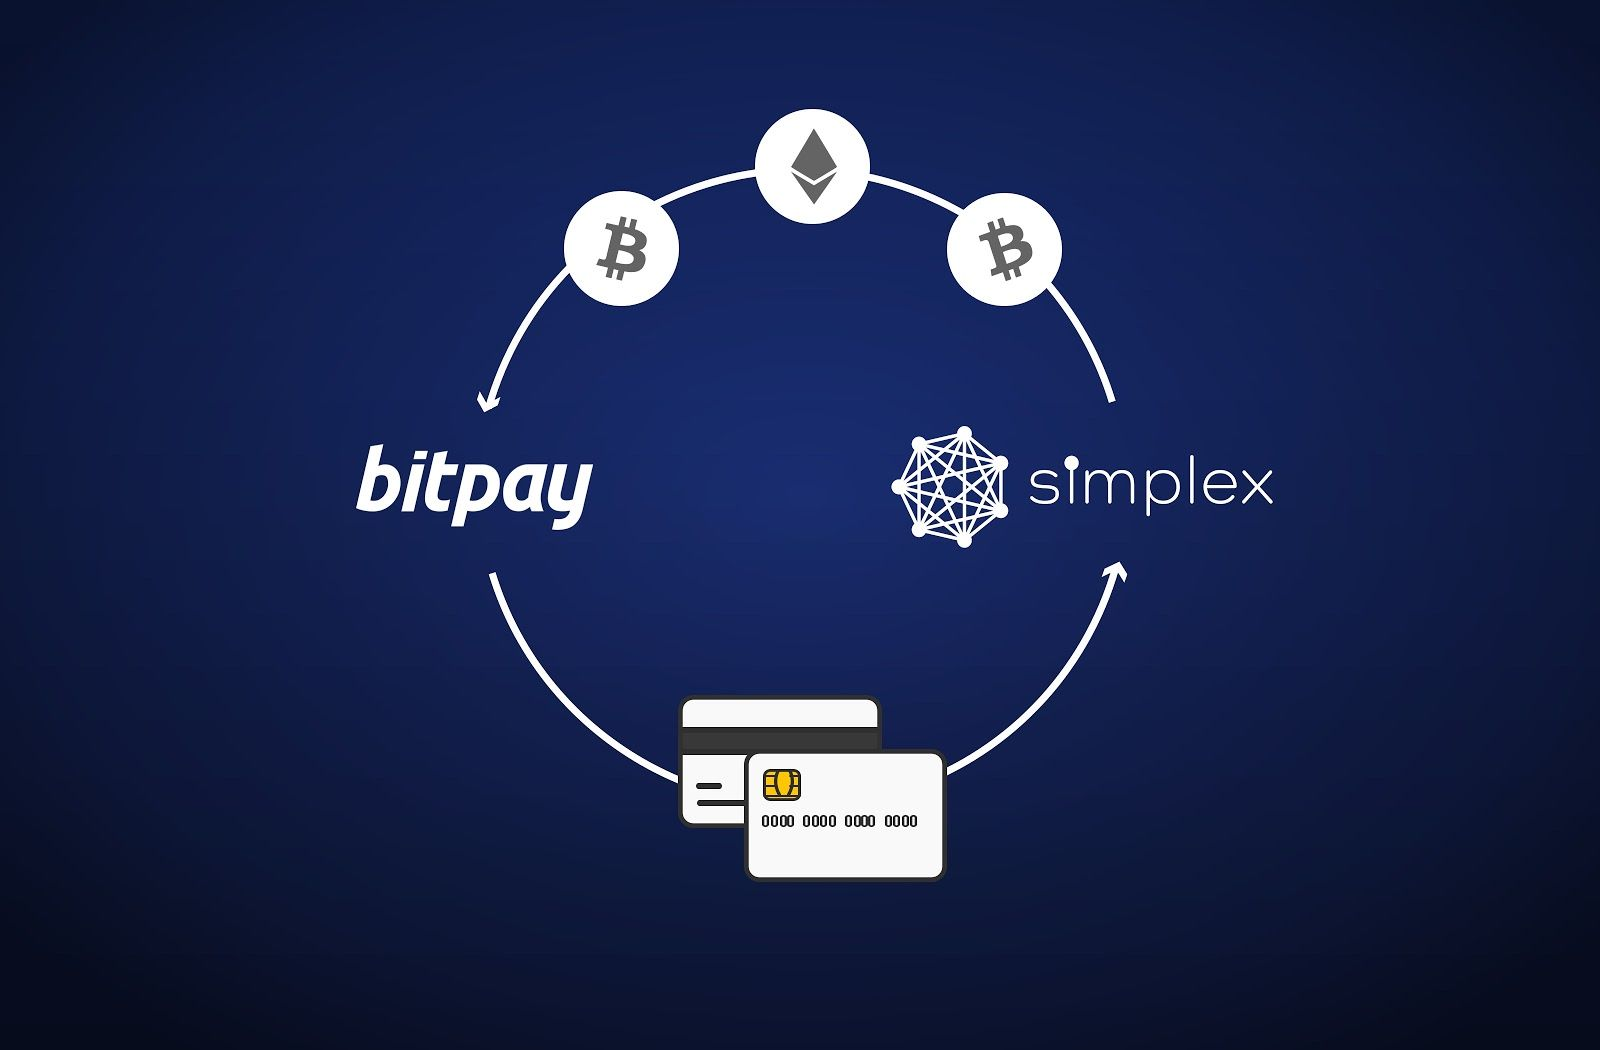 How To buy crypto in bitpay using Simplex?